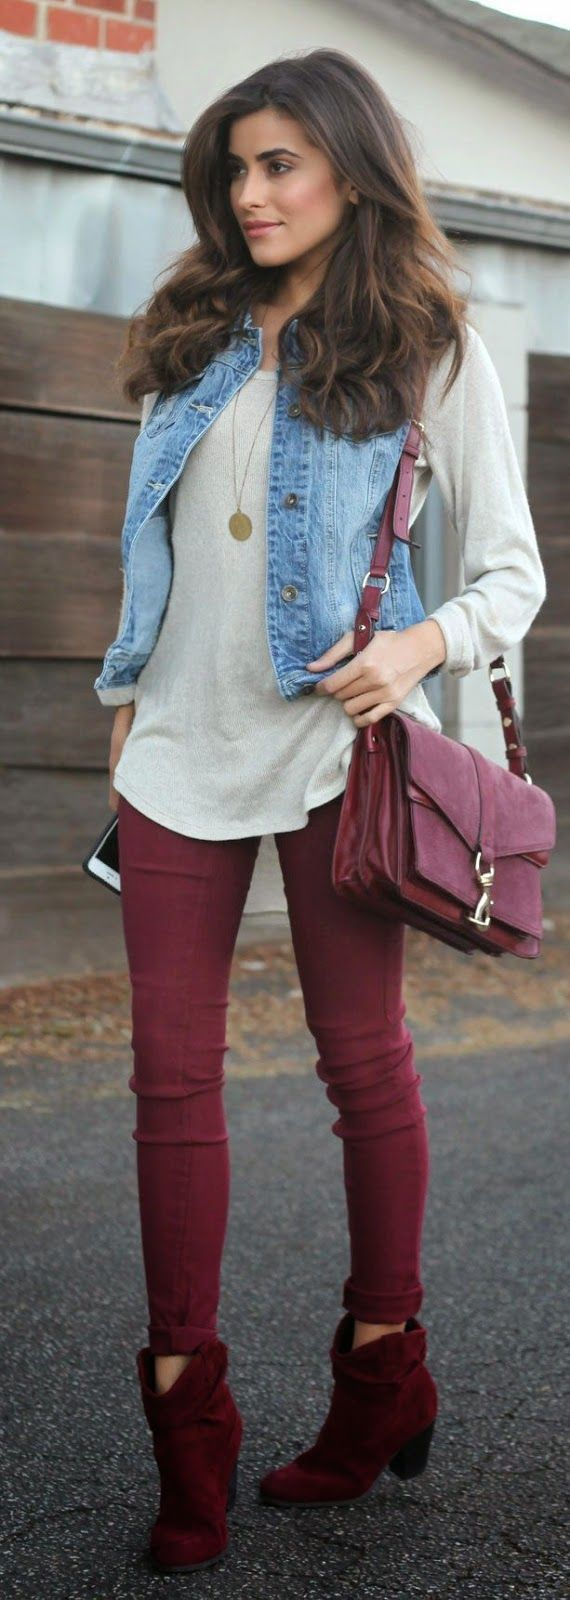 Fashion & Style Outfits 2015. Contrast colour combinations & Latest Trending Clothes. https://tvcmatrix.com/ShanekaJones